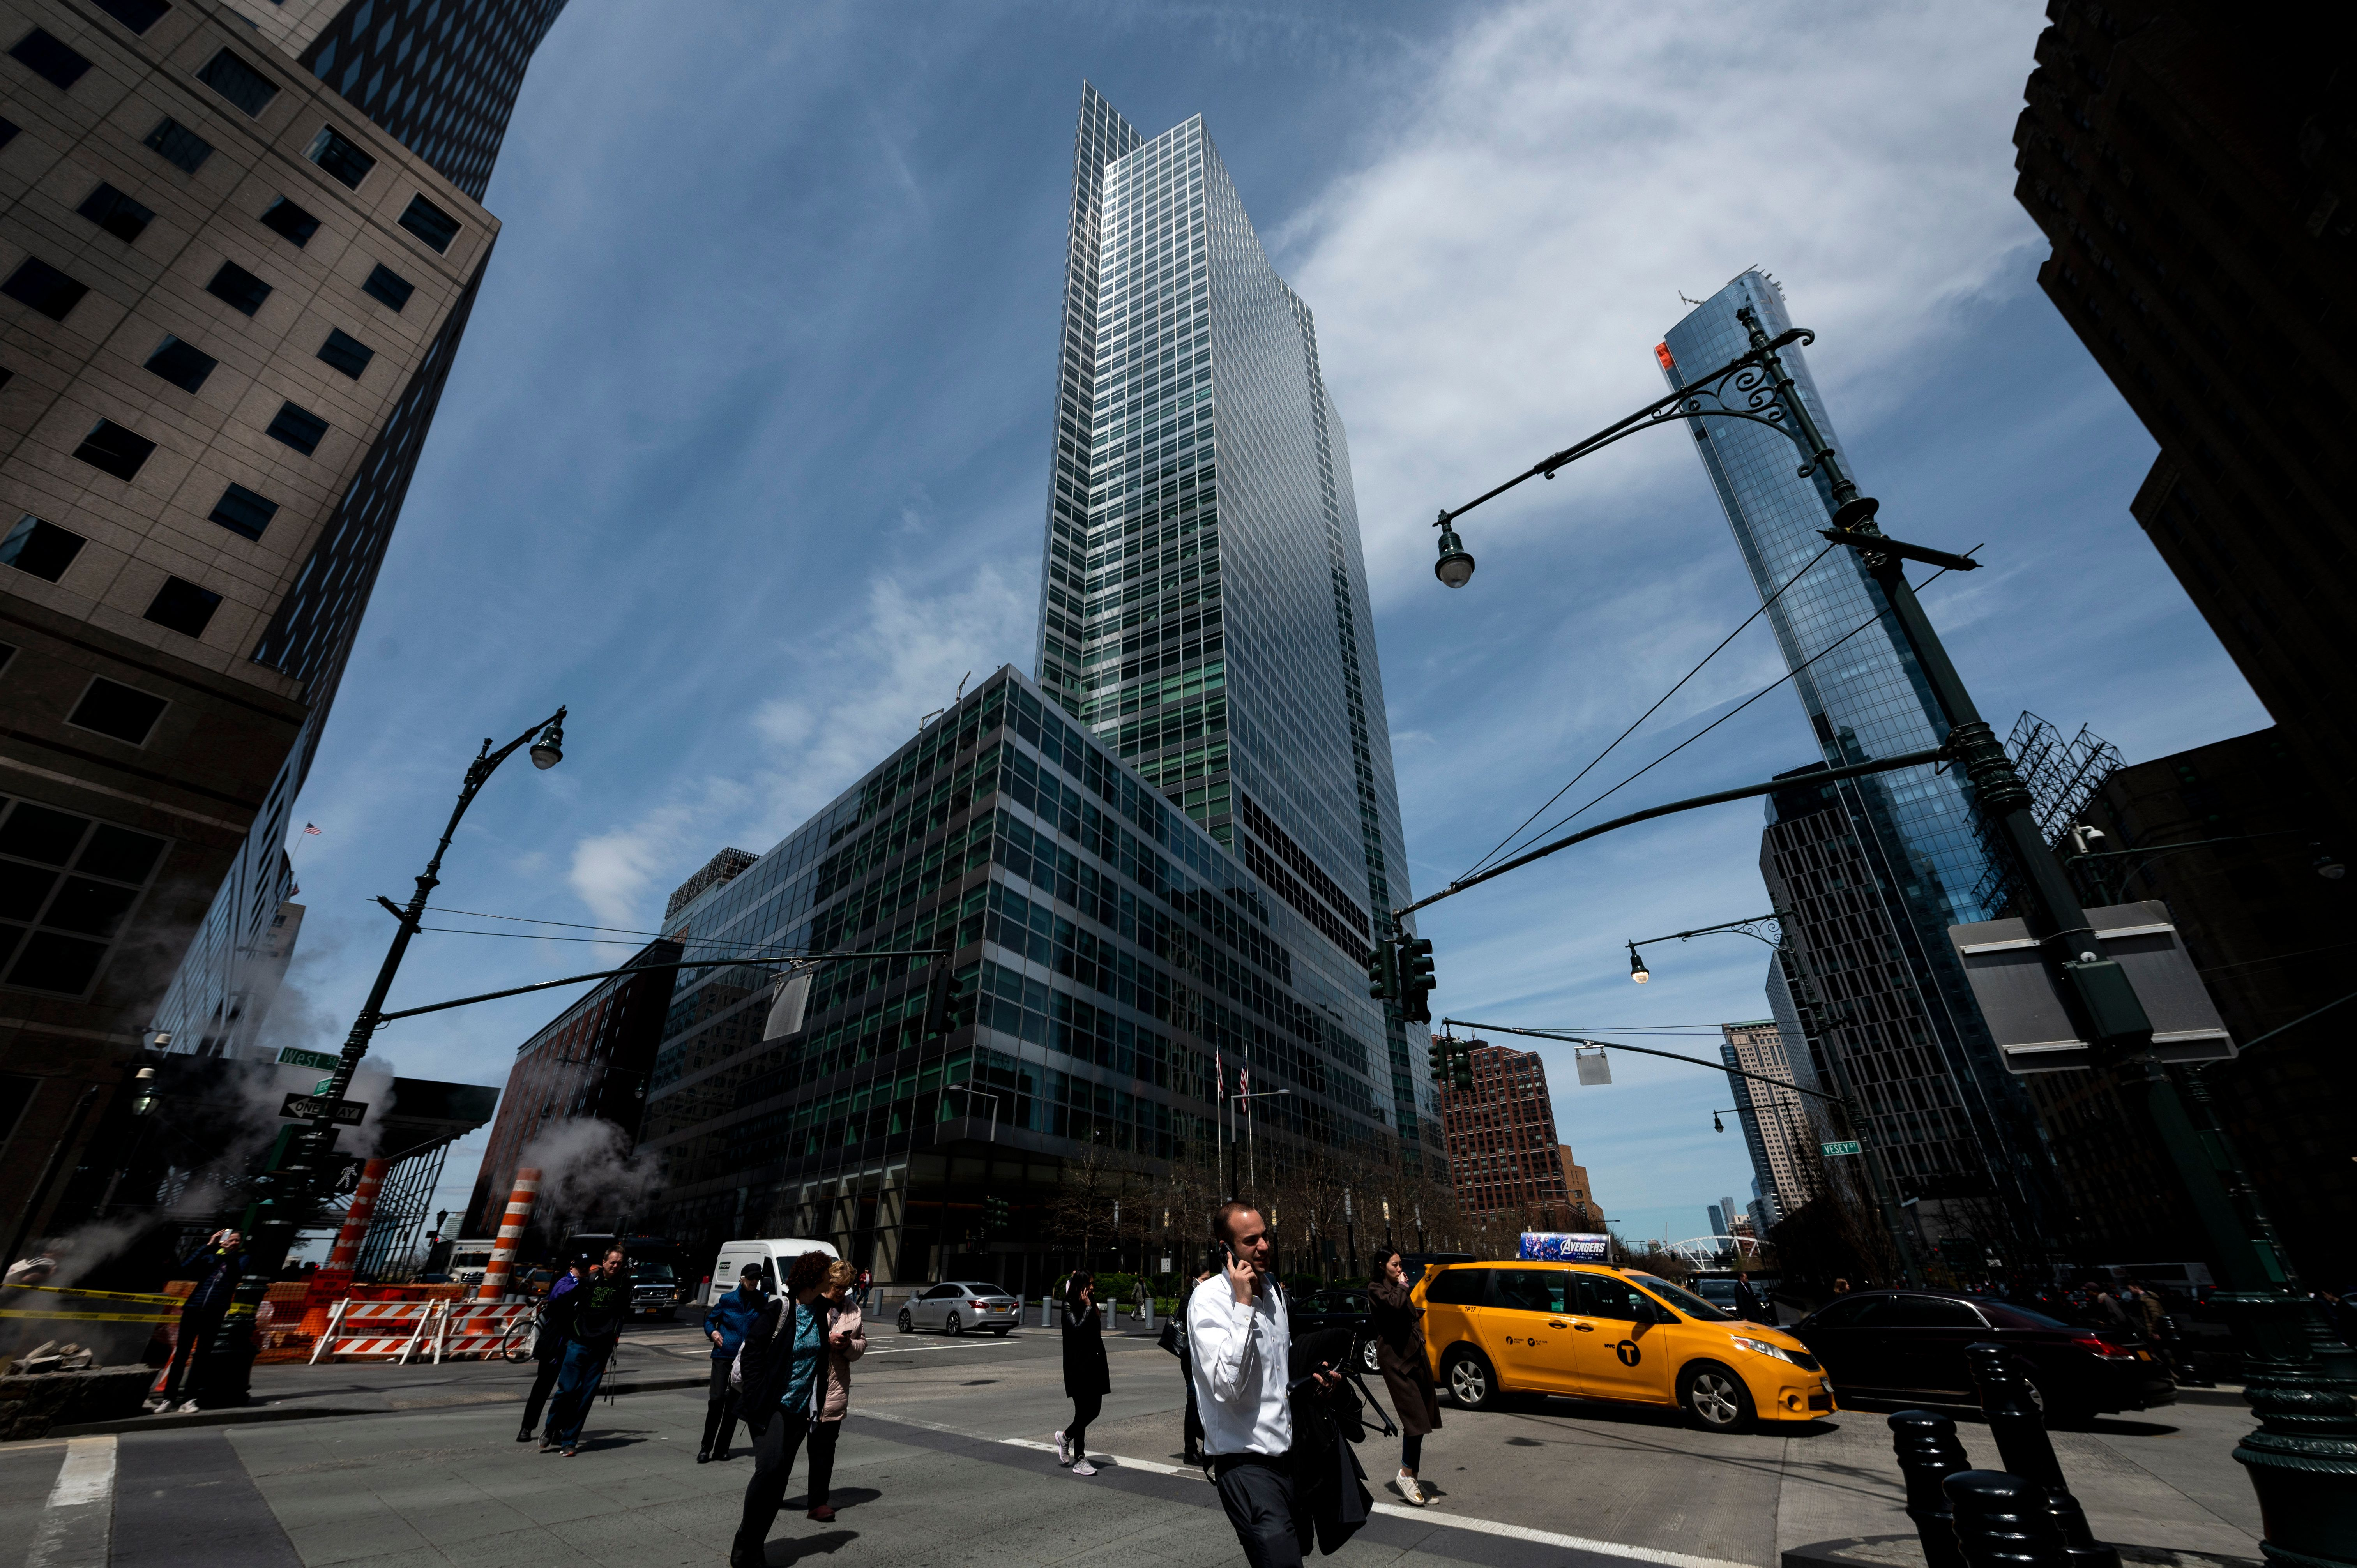 The headquarters of Goldman Sachs is pictured on April 17, 2019 in New York City.